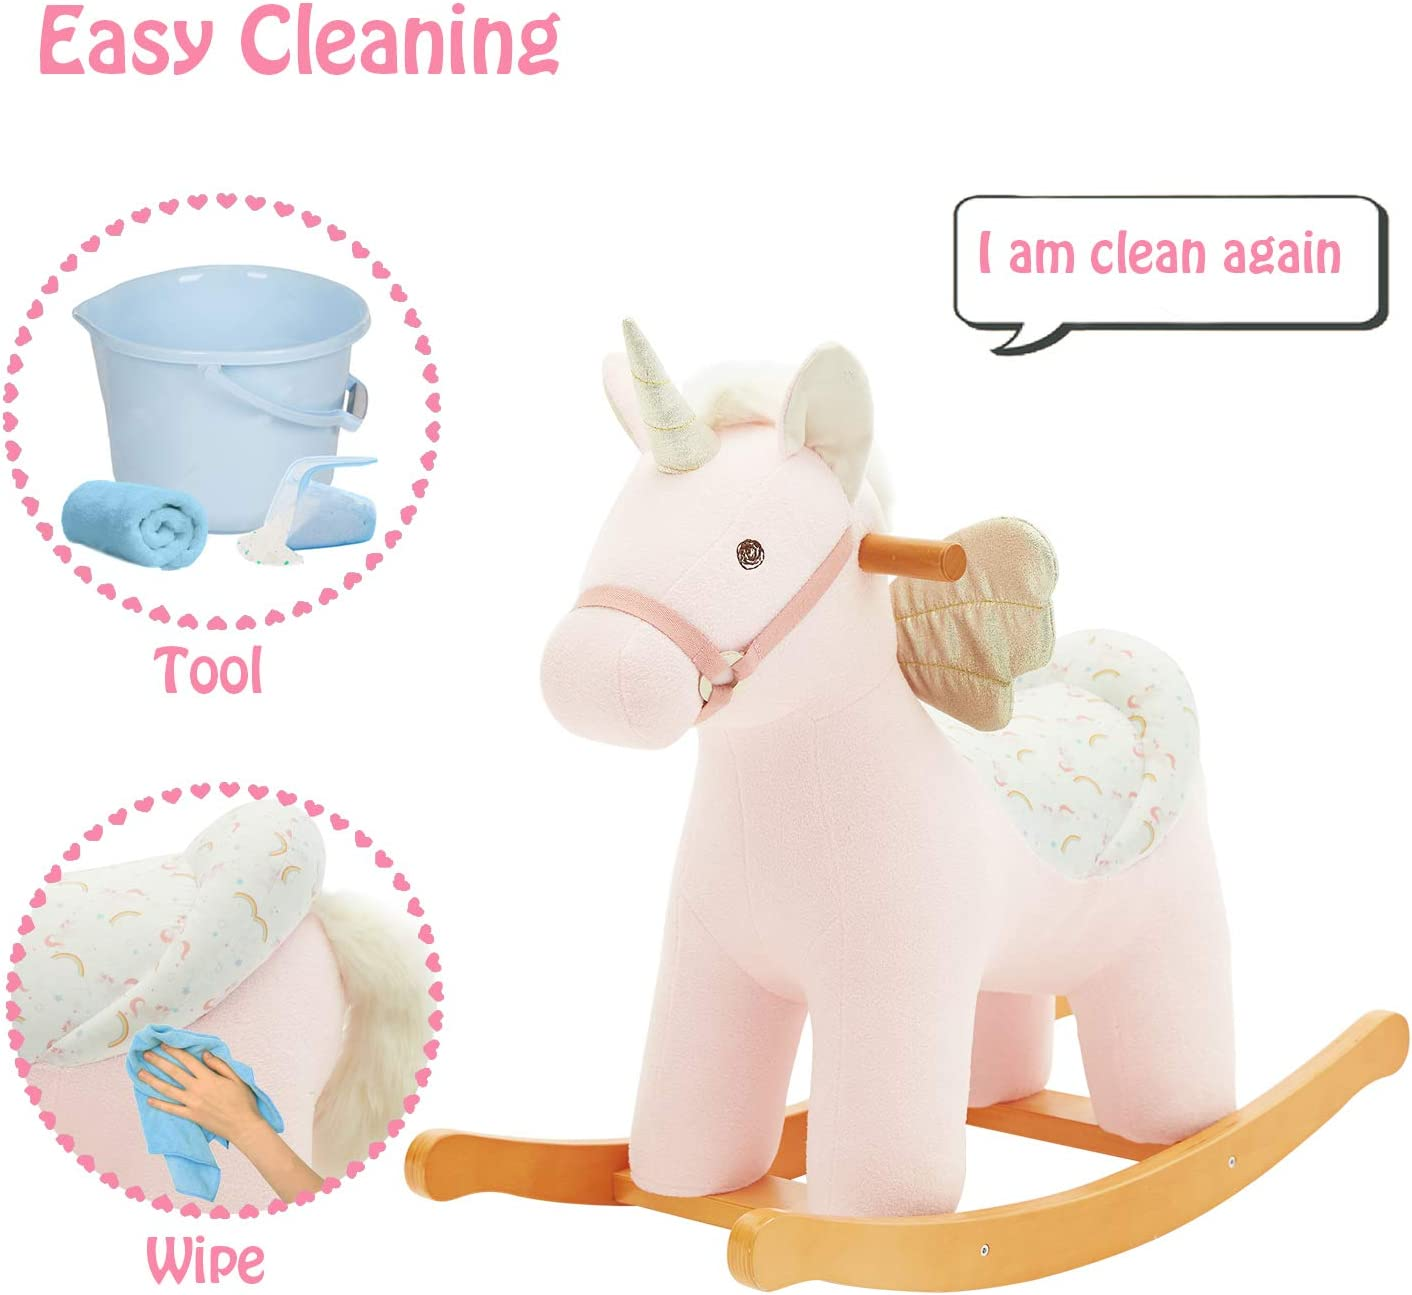 labebe Ride on Toy for Infant White Rocking Horse Plush Girl//Rocker Chair//Toddler Toy Pink Unicorn with Wings NEW Baby Rocking Horse Kid Wooden Rocker for 1-3 Year Old Rocking Animal Child